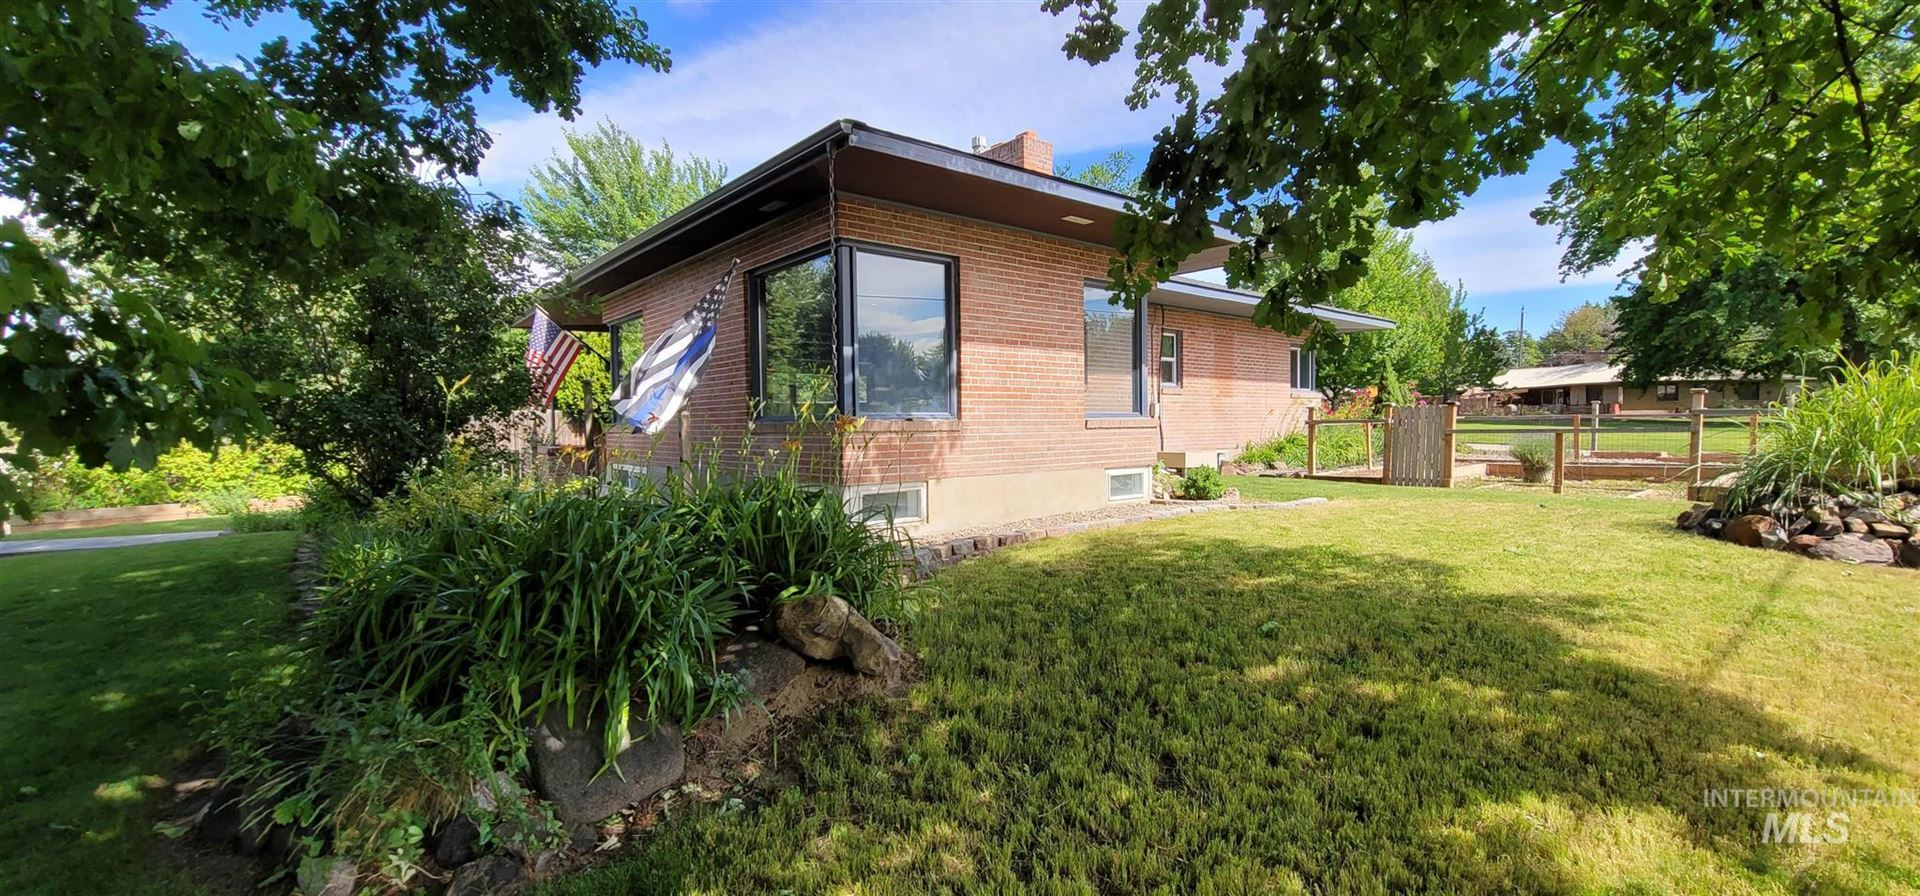 Photo of 2004 Center Ave, Payette, ID 83661 (MLS # 98807160)